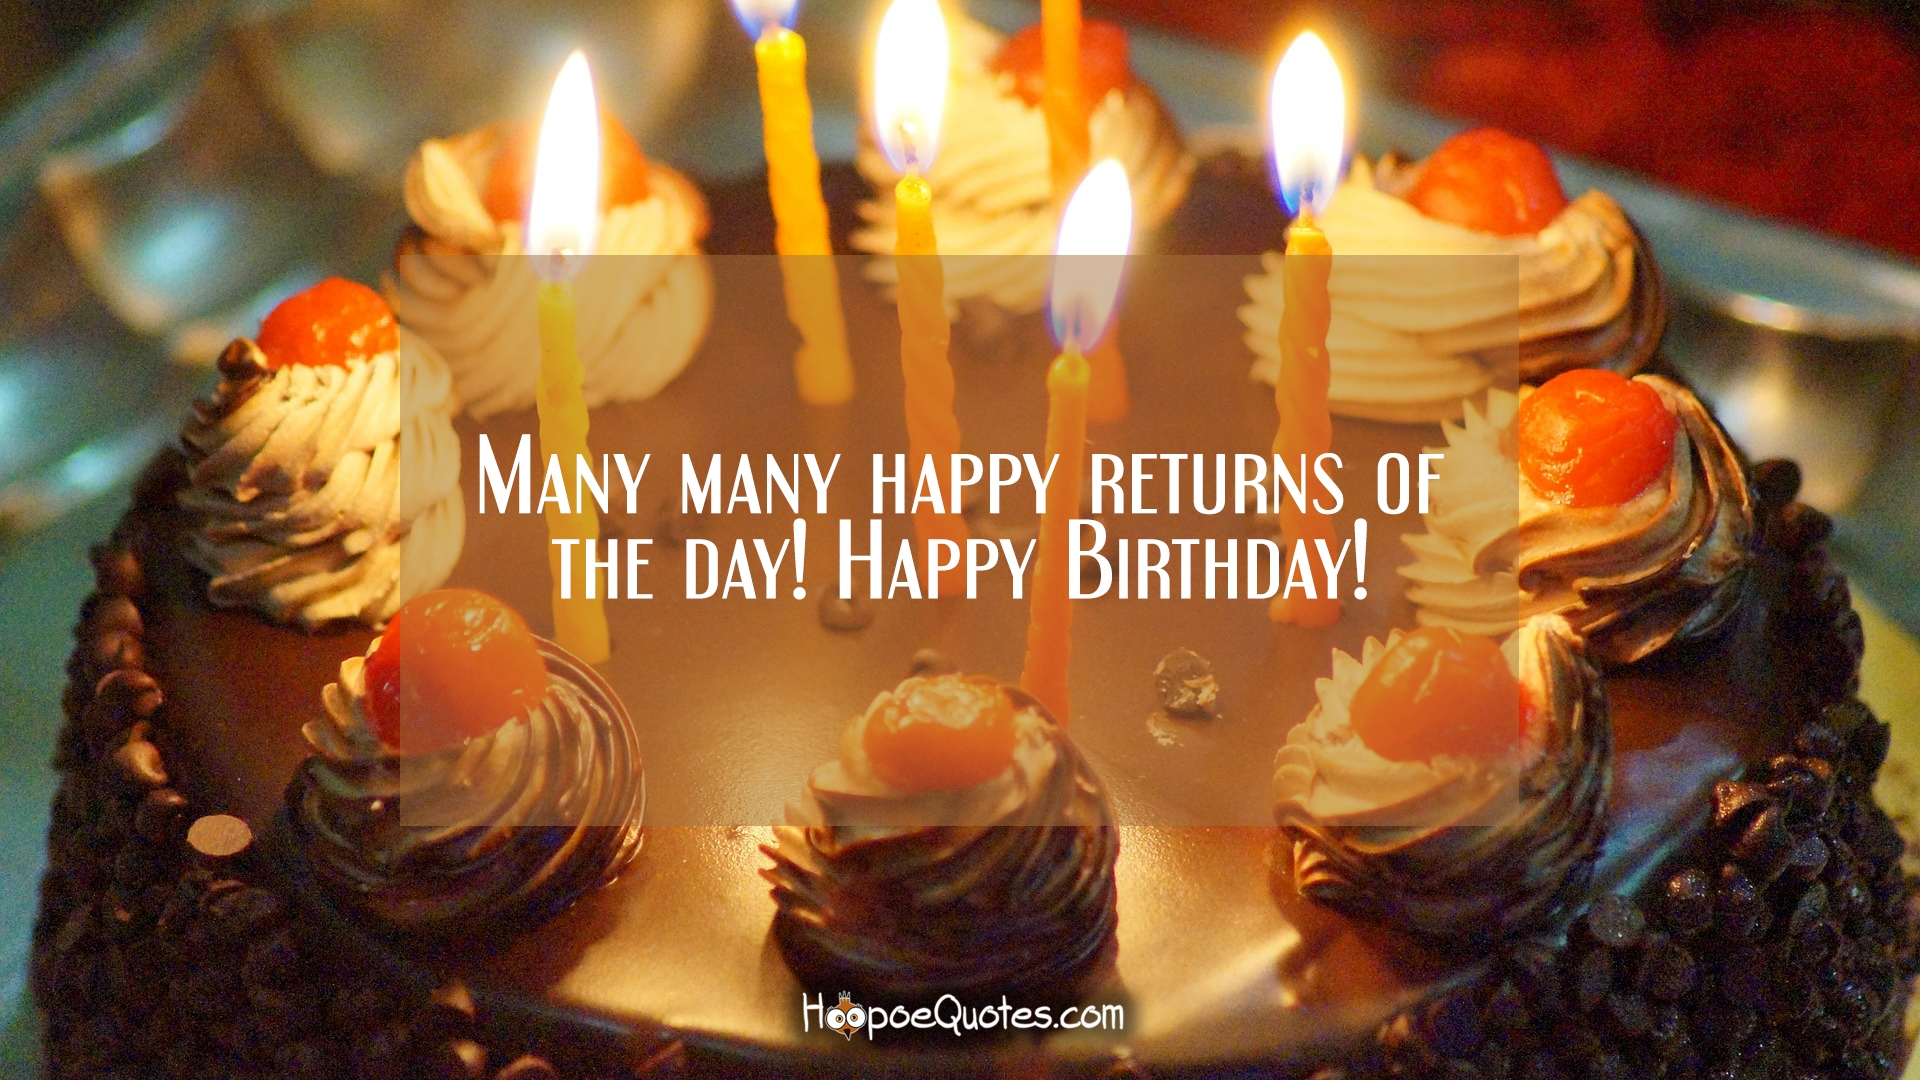 Short And Simple Happy Birthday Wishes 250 Images Sweet And